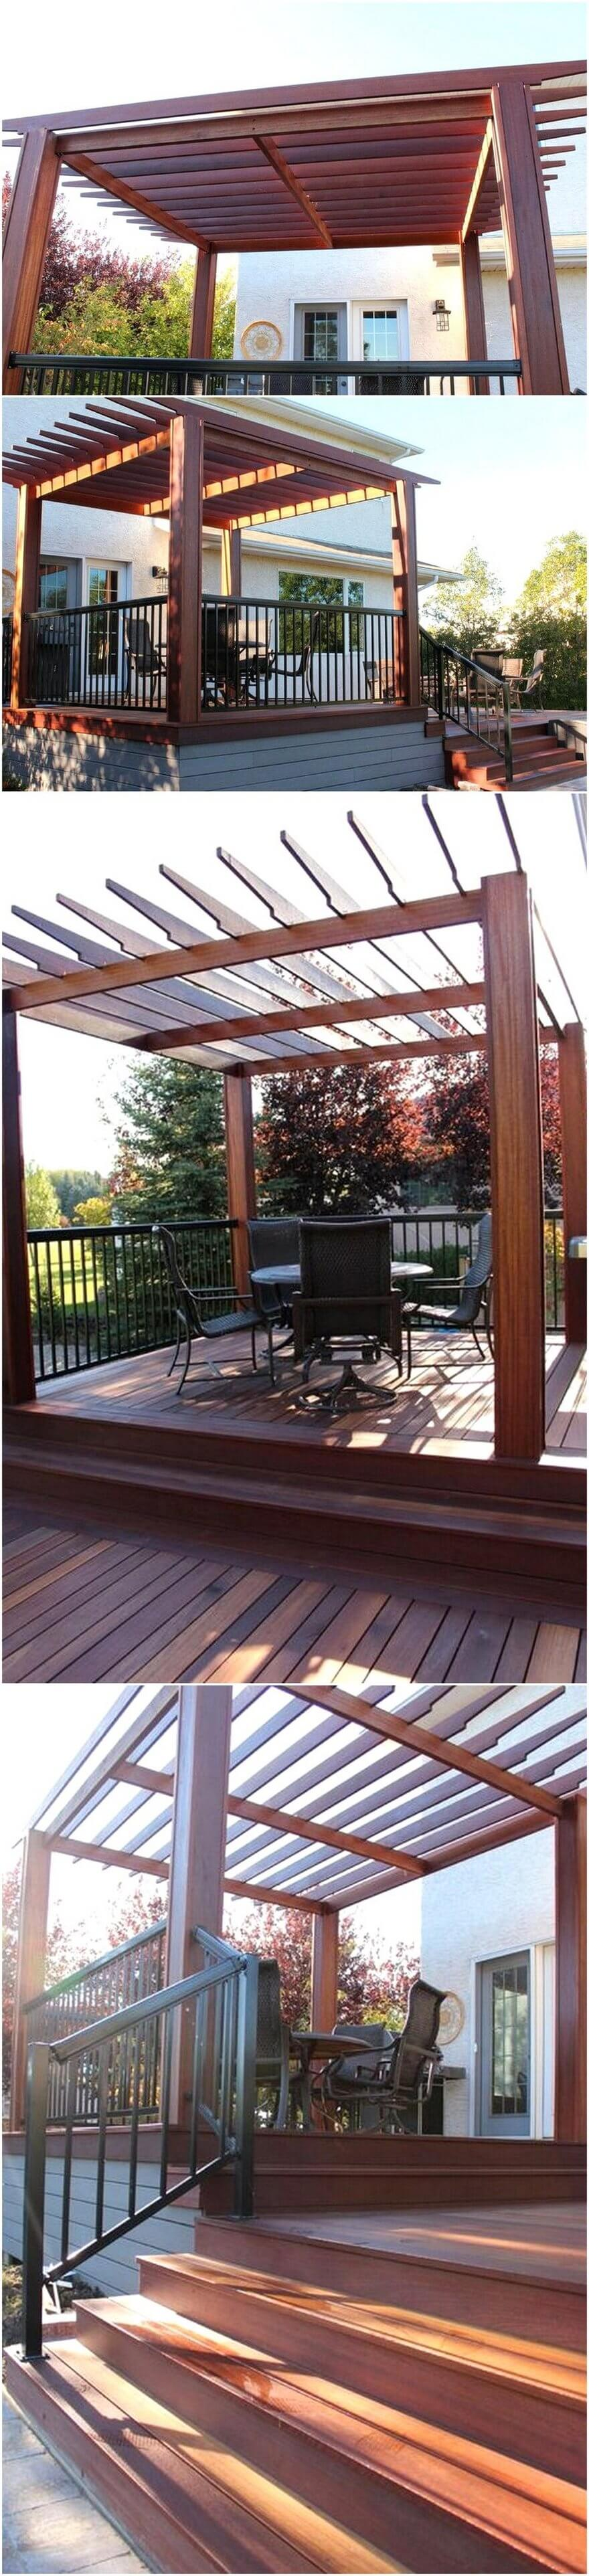 patio pergola deck designs 14